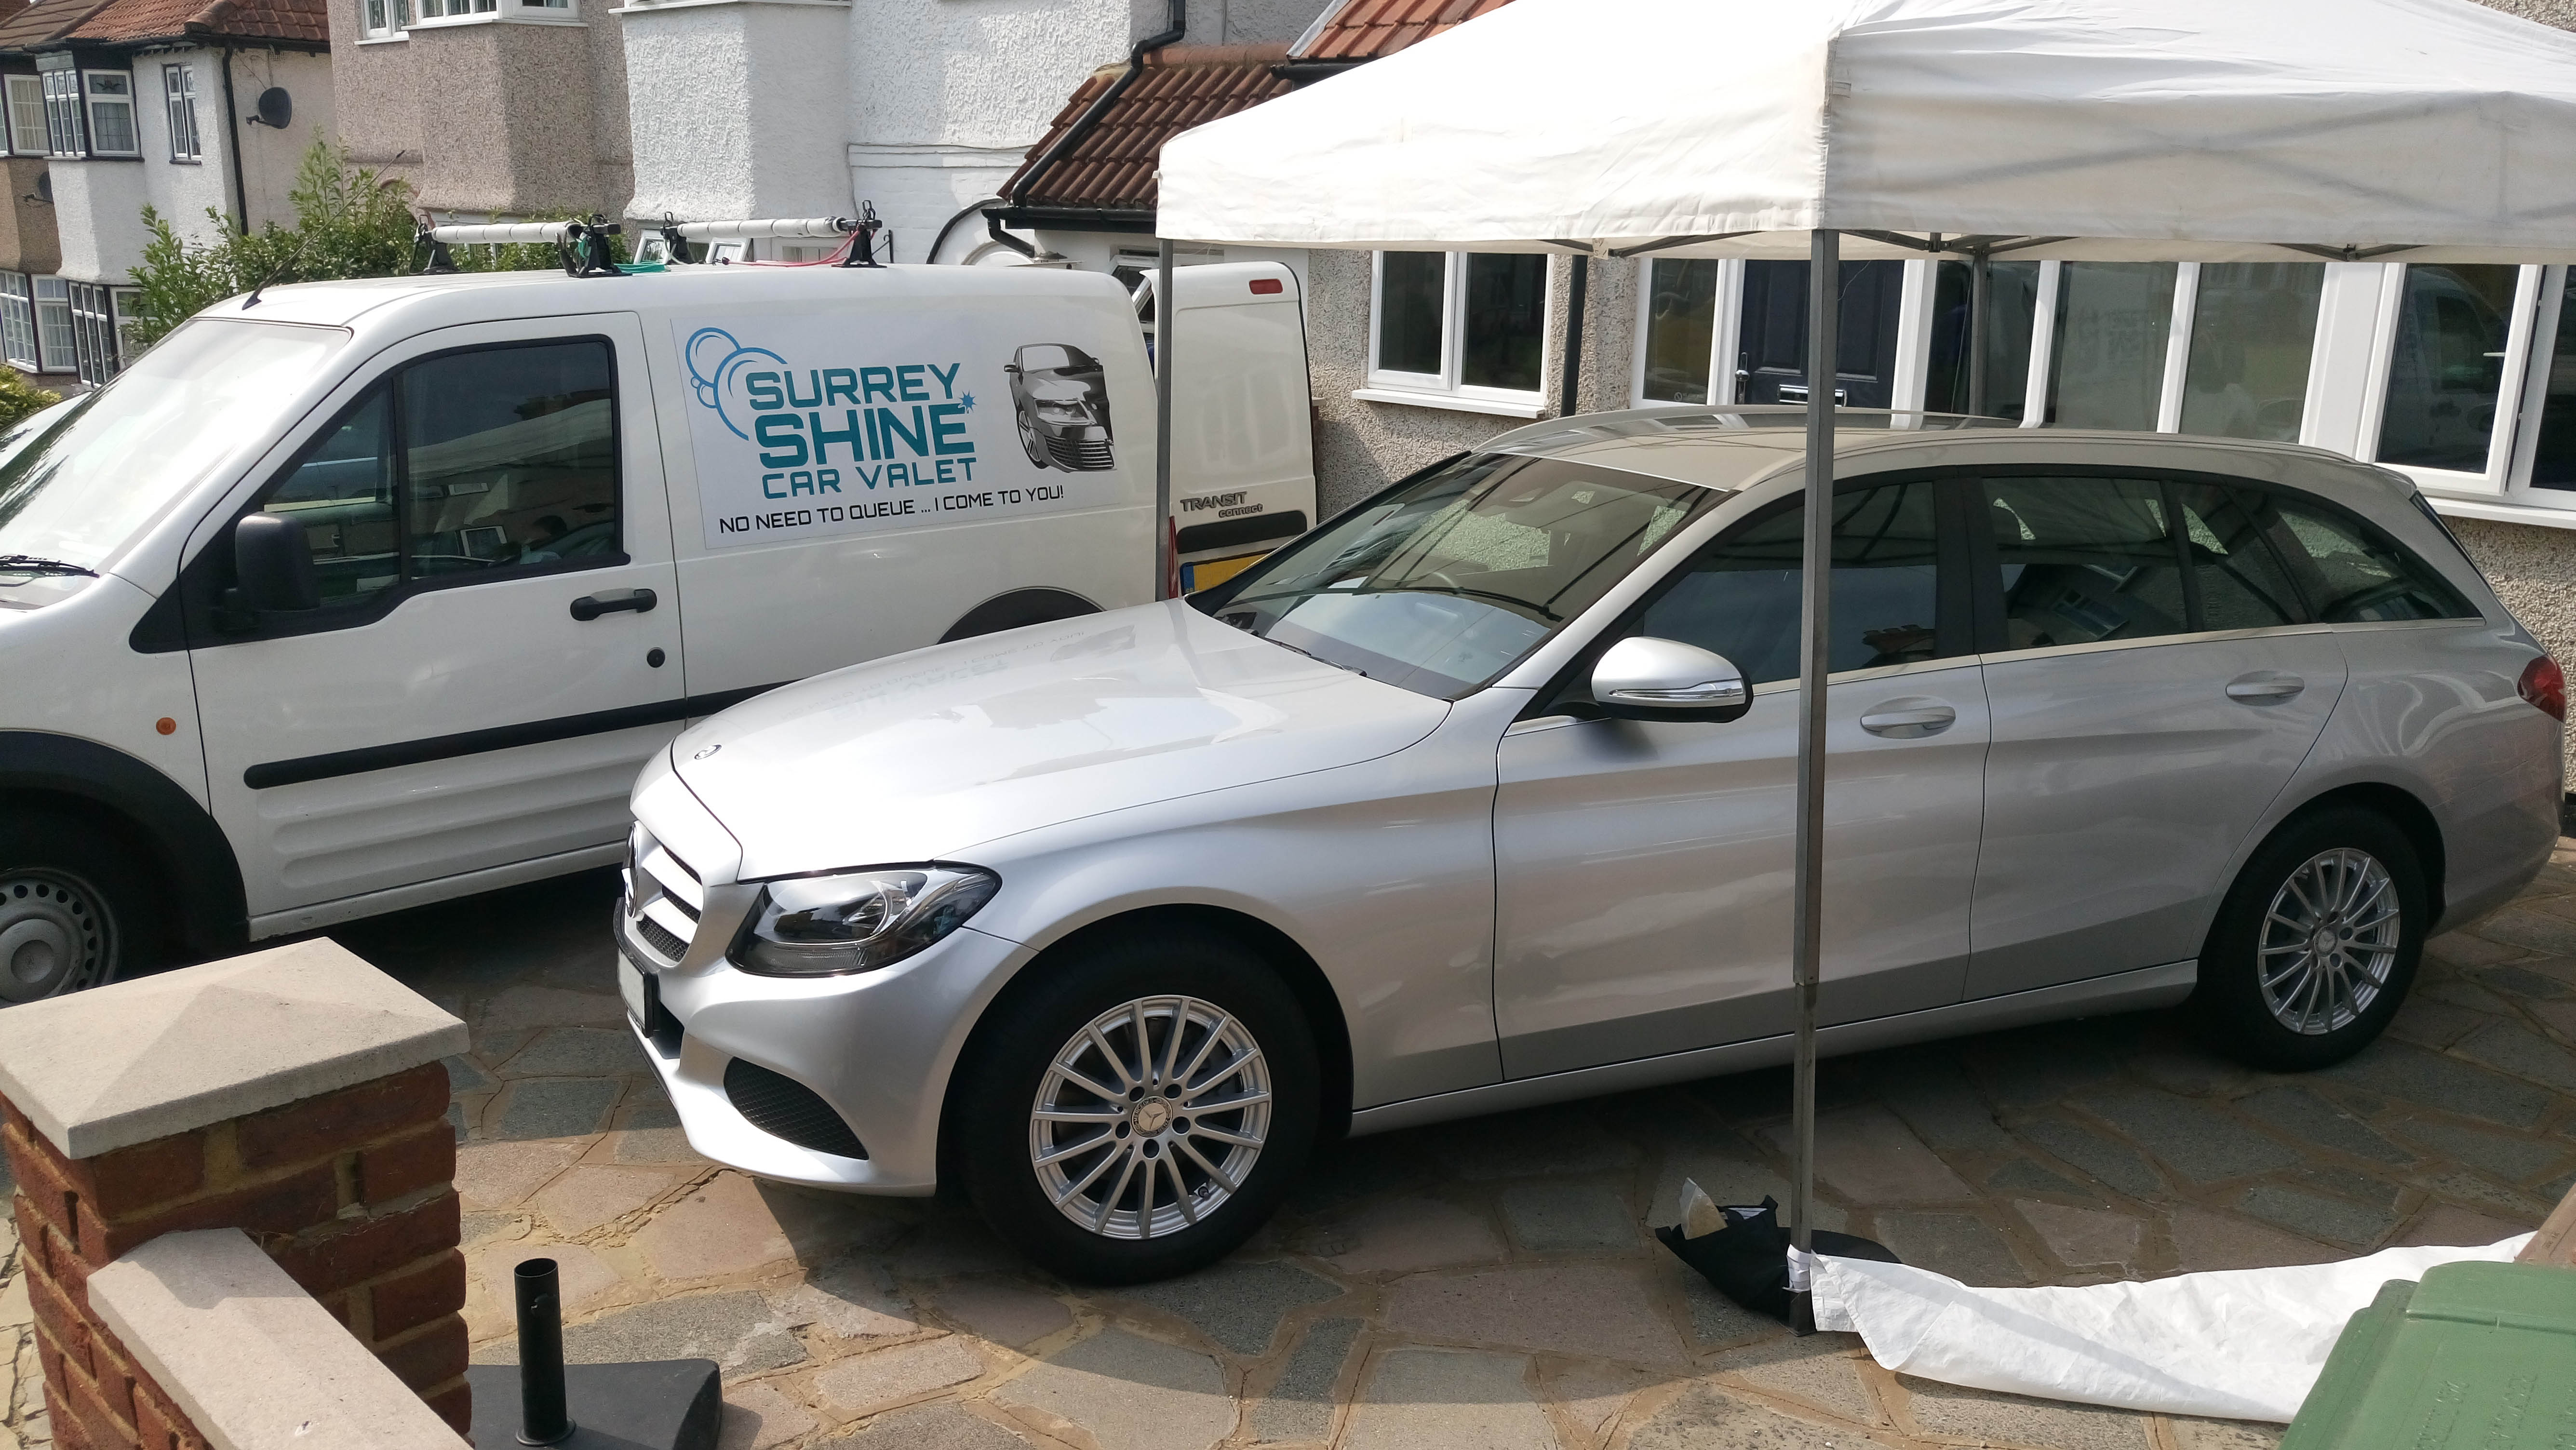 Surrey Shine Mobile Car Valet